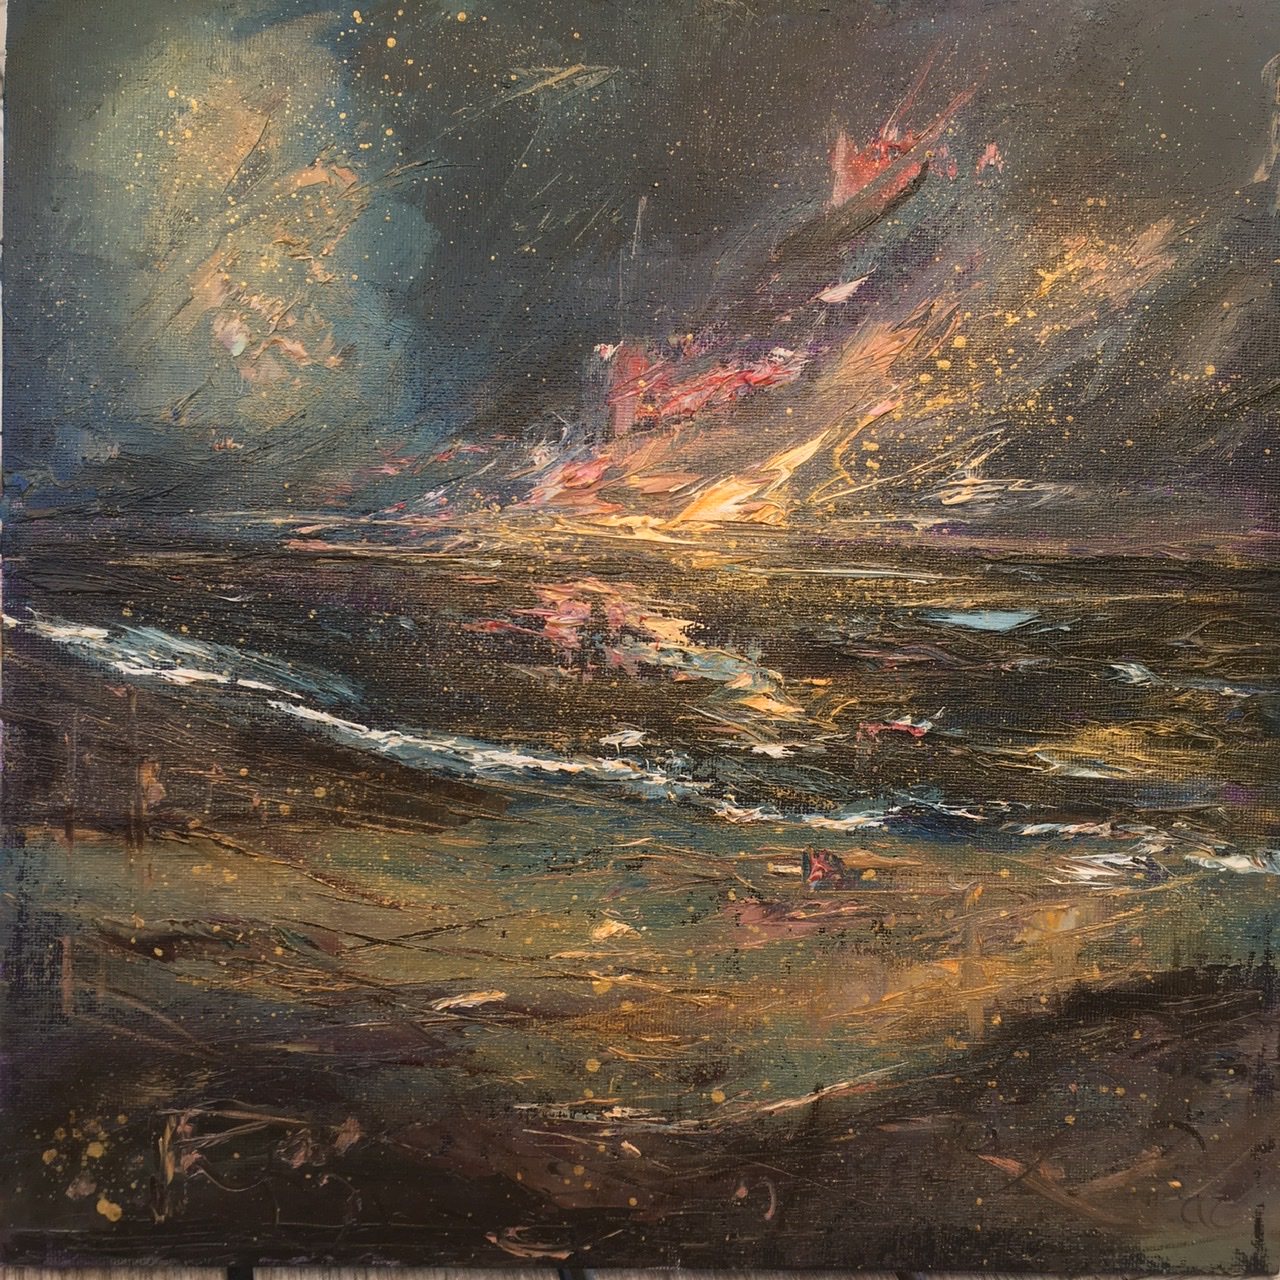 Dusk falling, oil painting by Anna Cumming